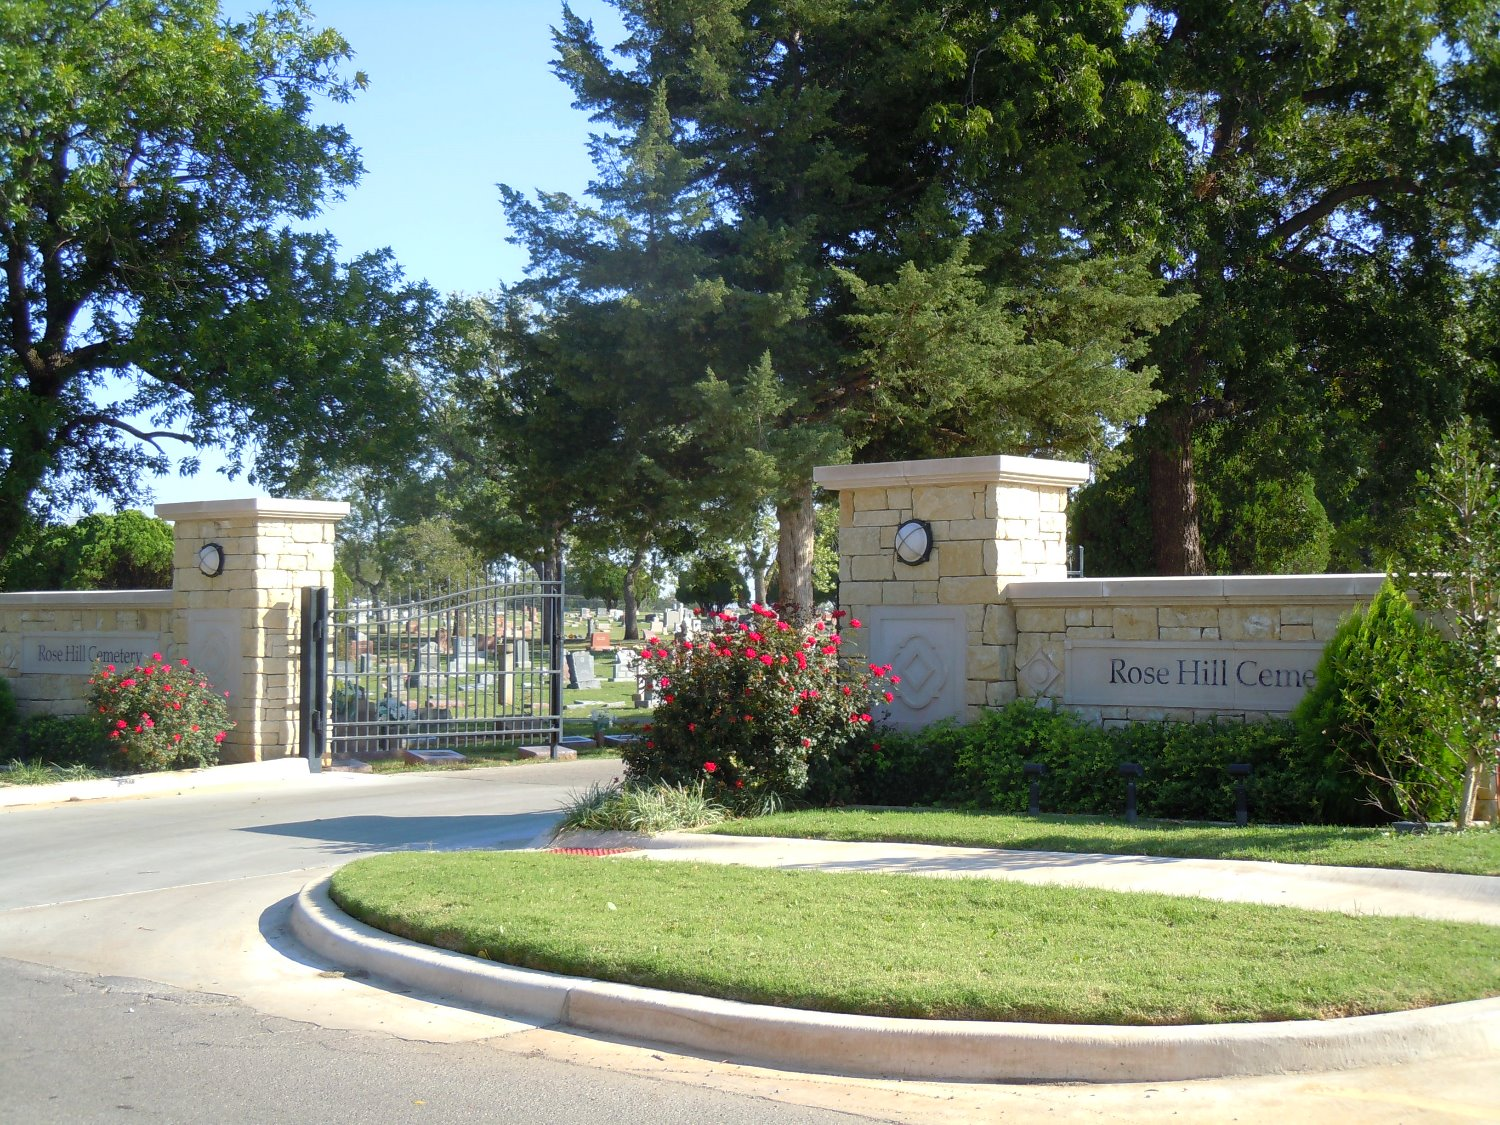 Rose Hill Cemetry